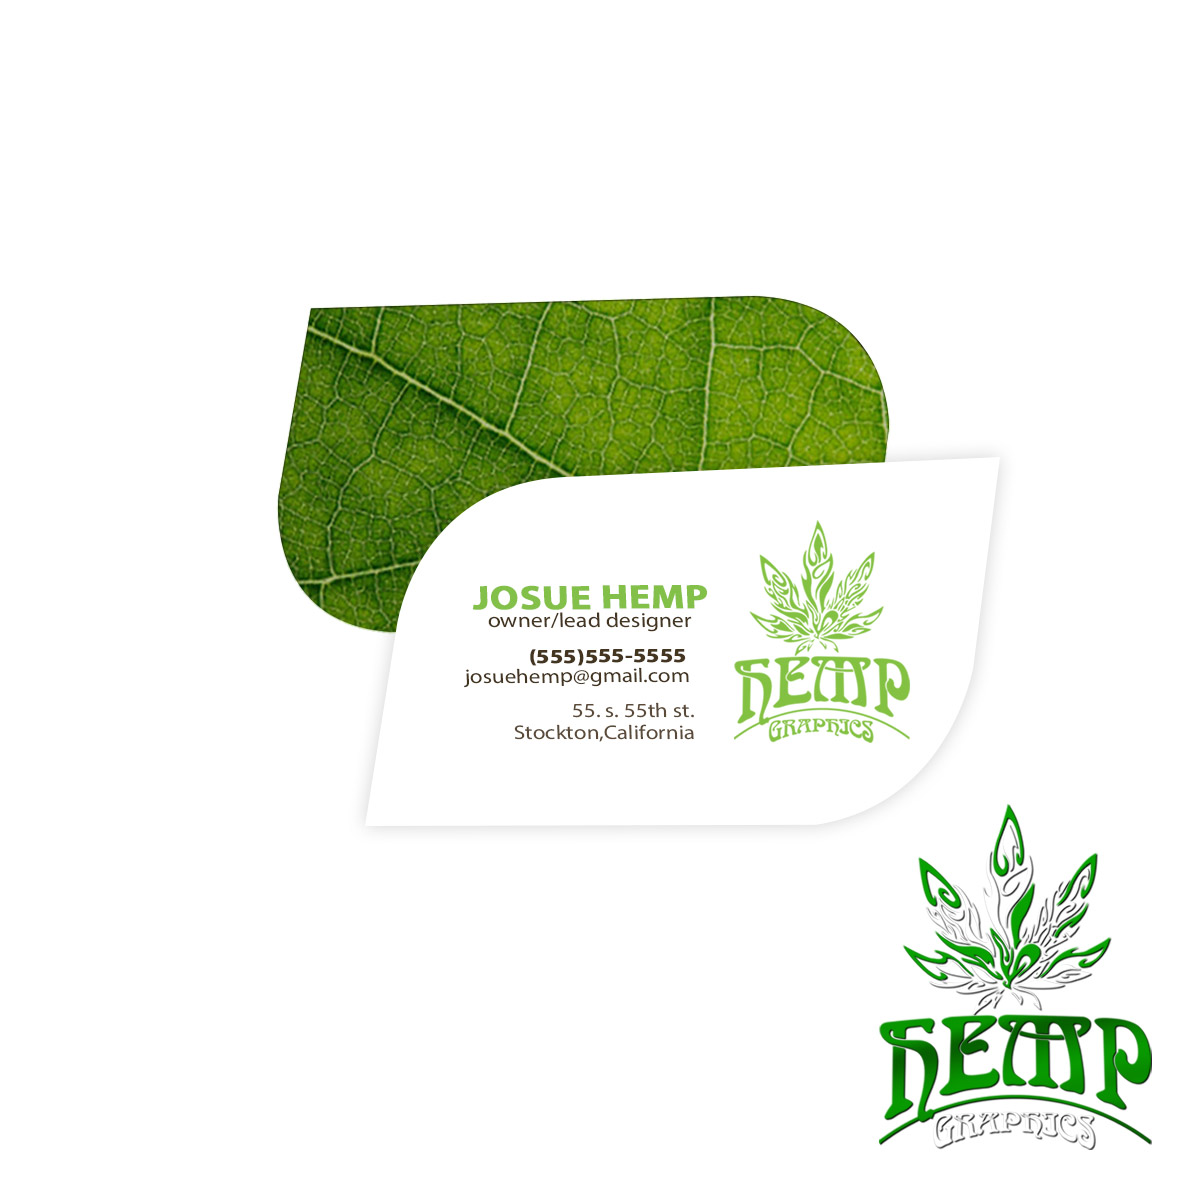 Die Cut Business Cards - Hemp Graphics | Medical Marijuana ...